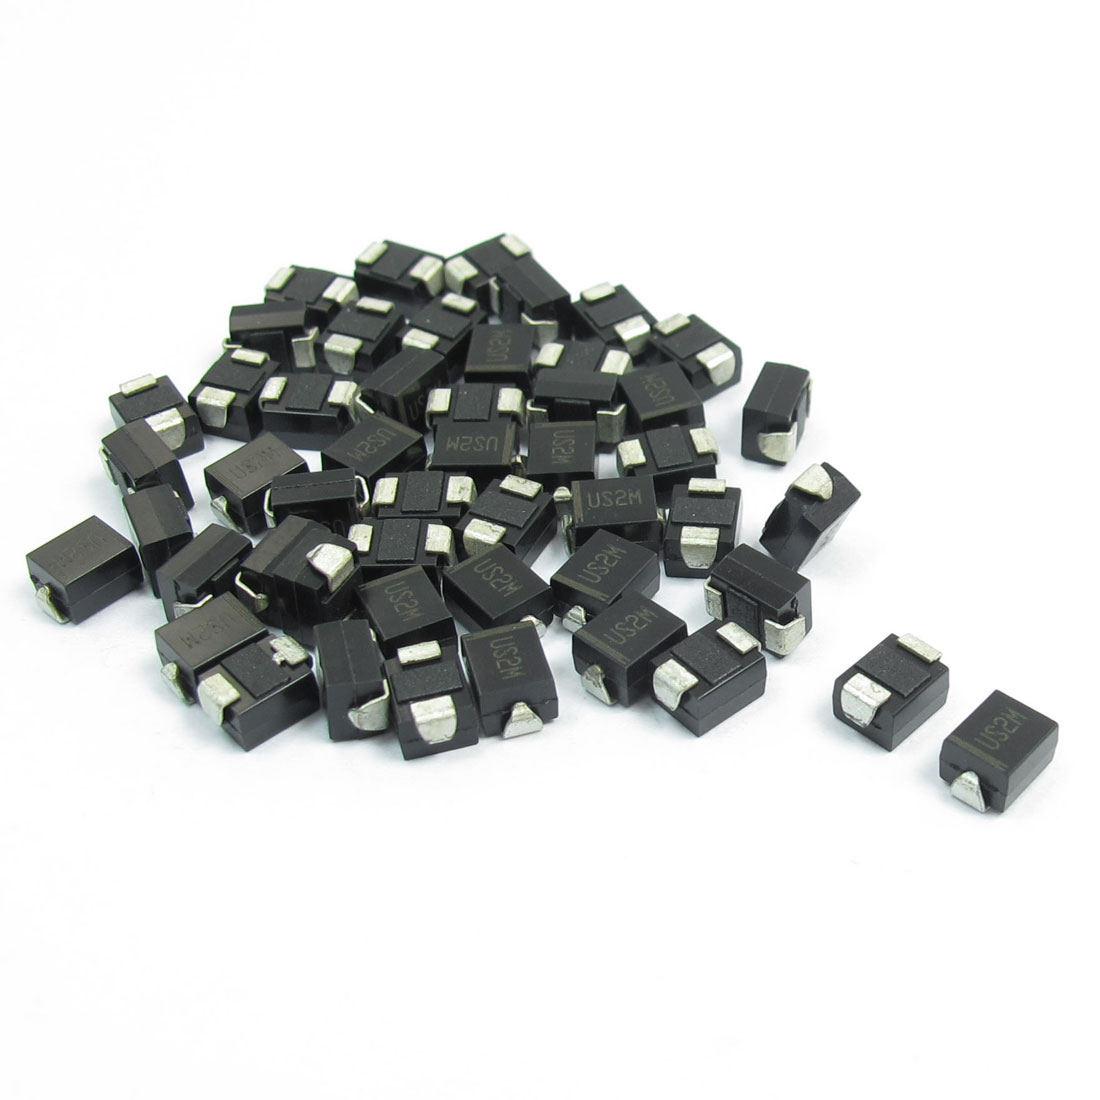 Electric SMD DO-214AA 100V 2A High Efficiency Rectifier Diode US2M 50pcs